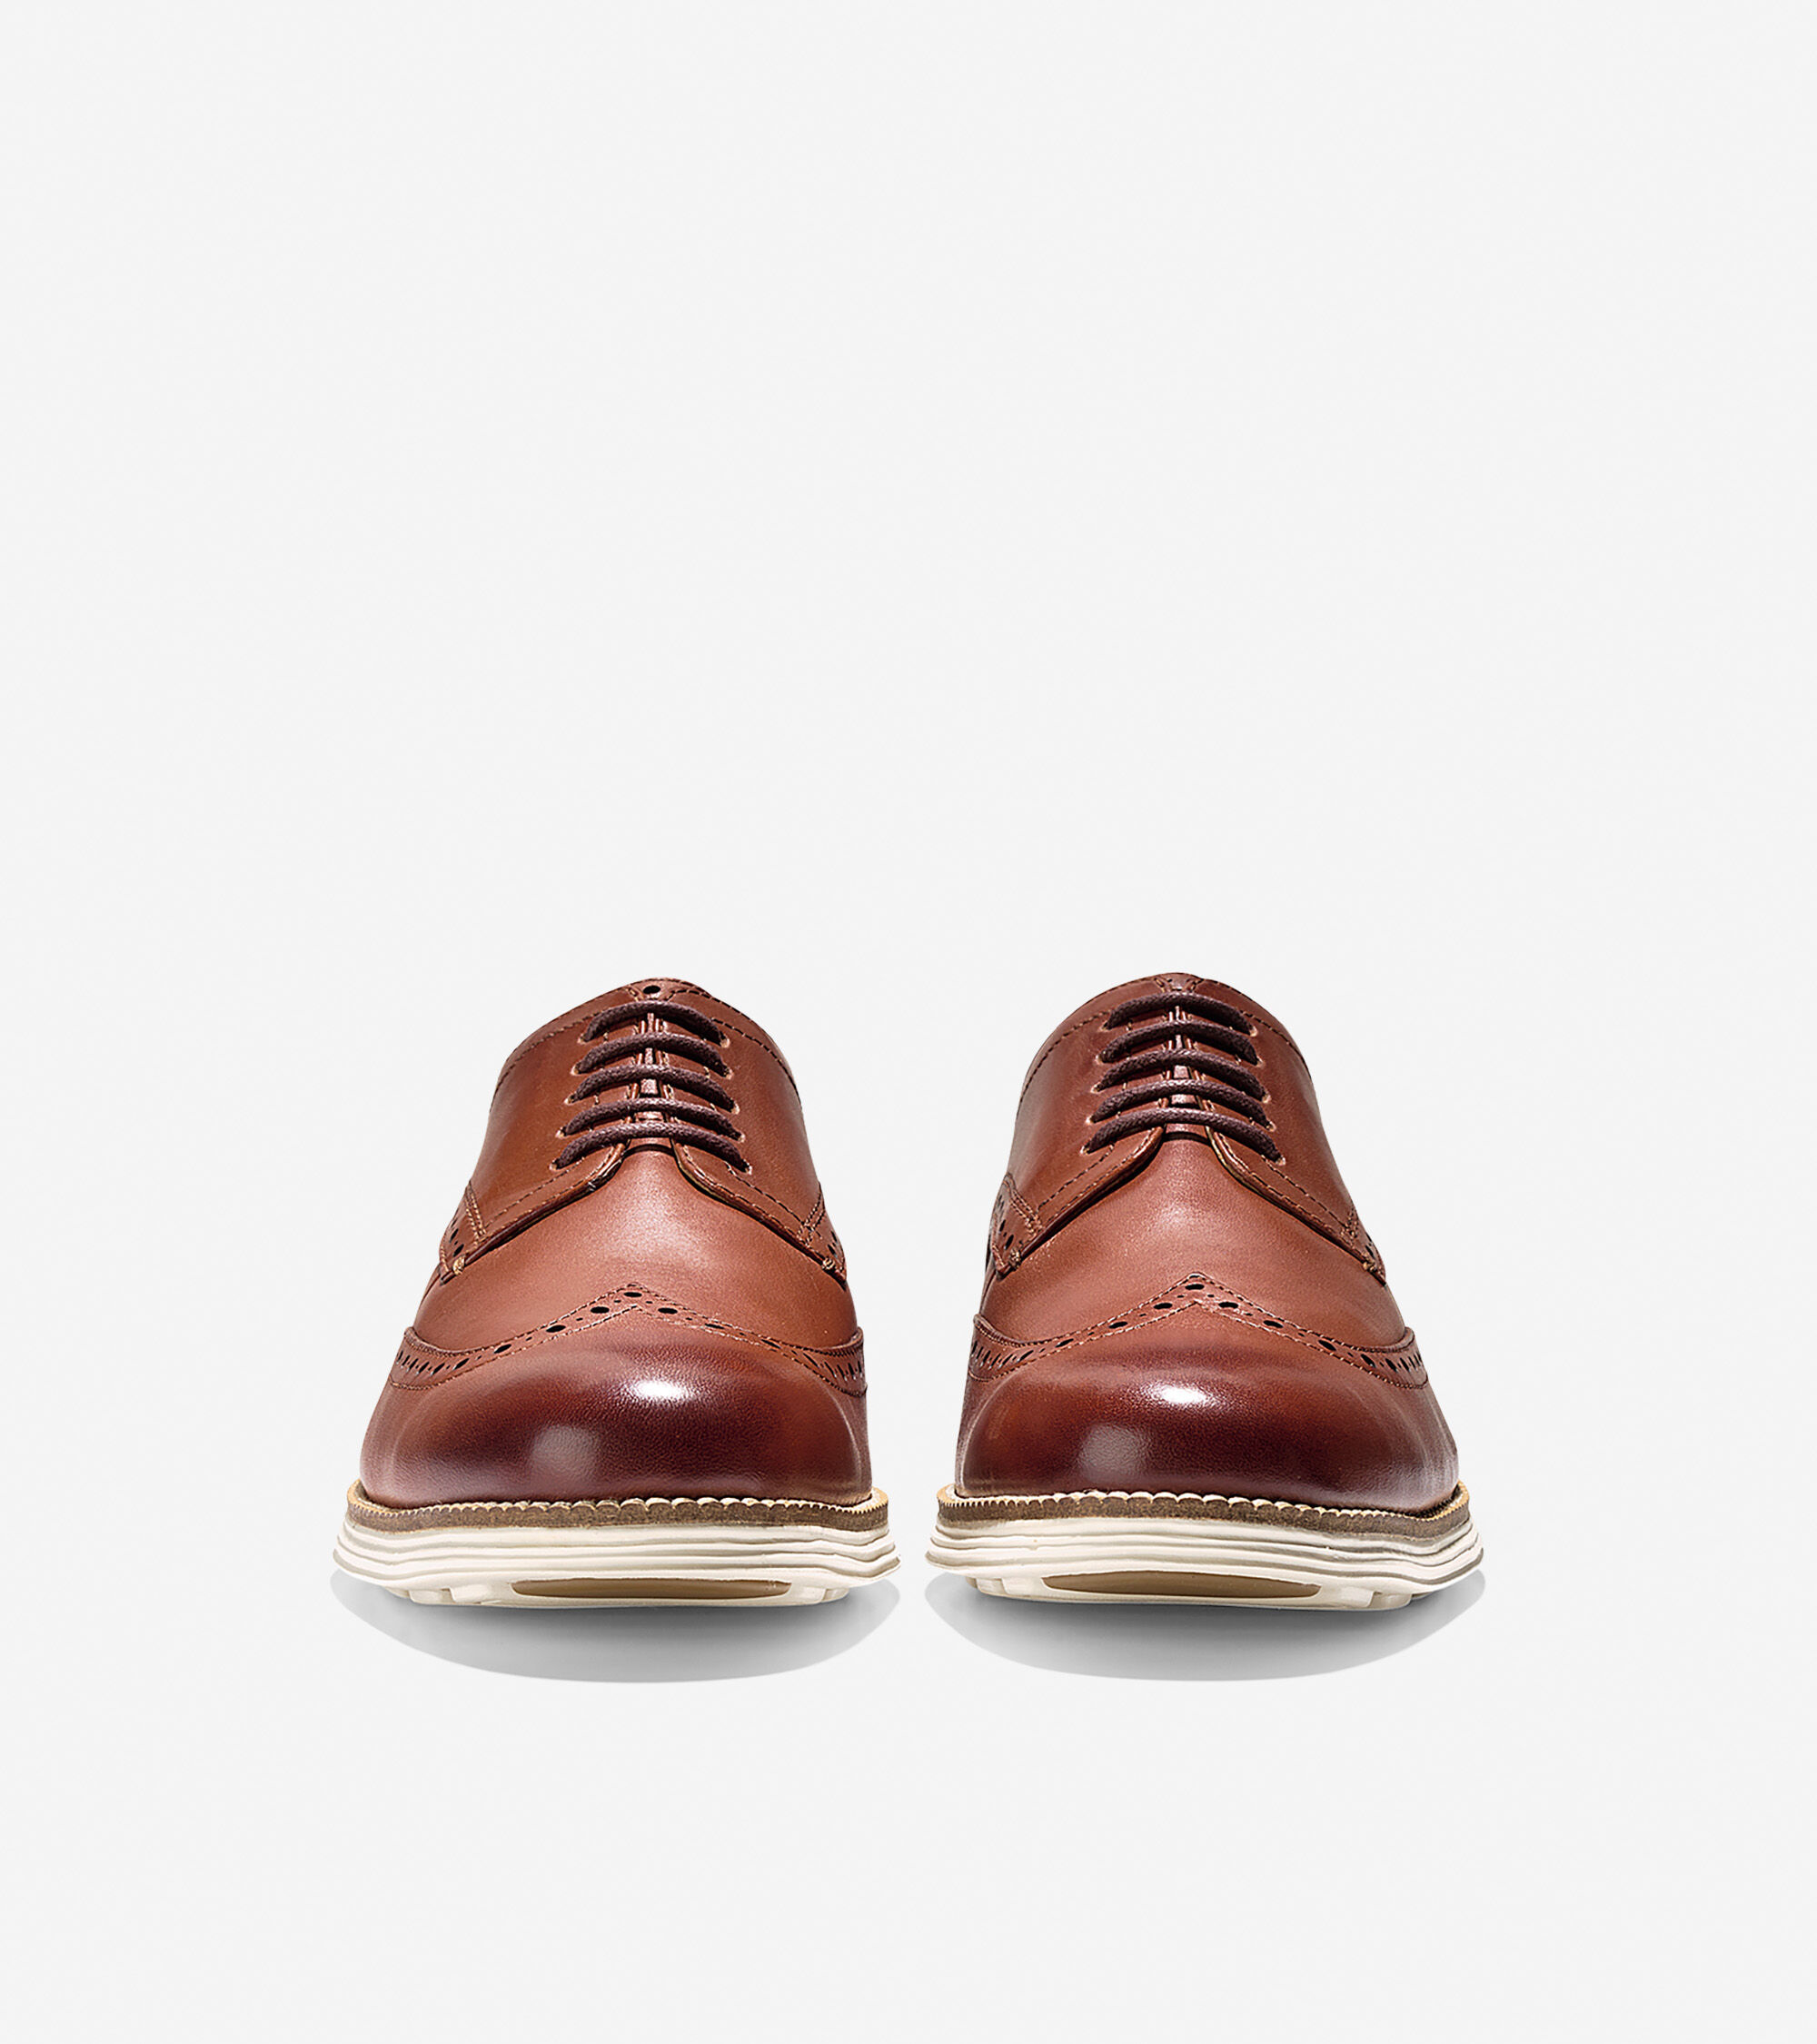 online retailer 15a8d 93216 Men s ØriginalGrand Wingtip Oxford · Men s ØriginalGrand Wingtip Oxford ...